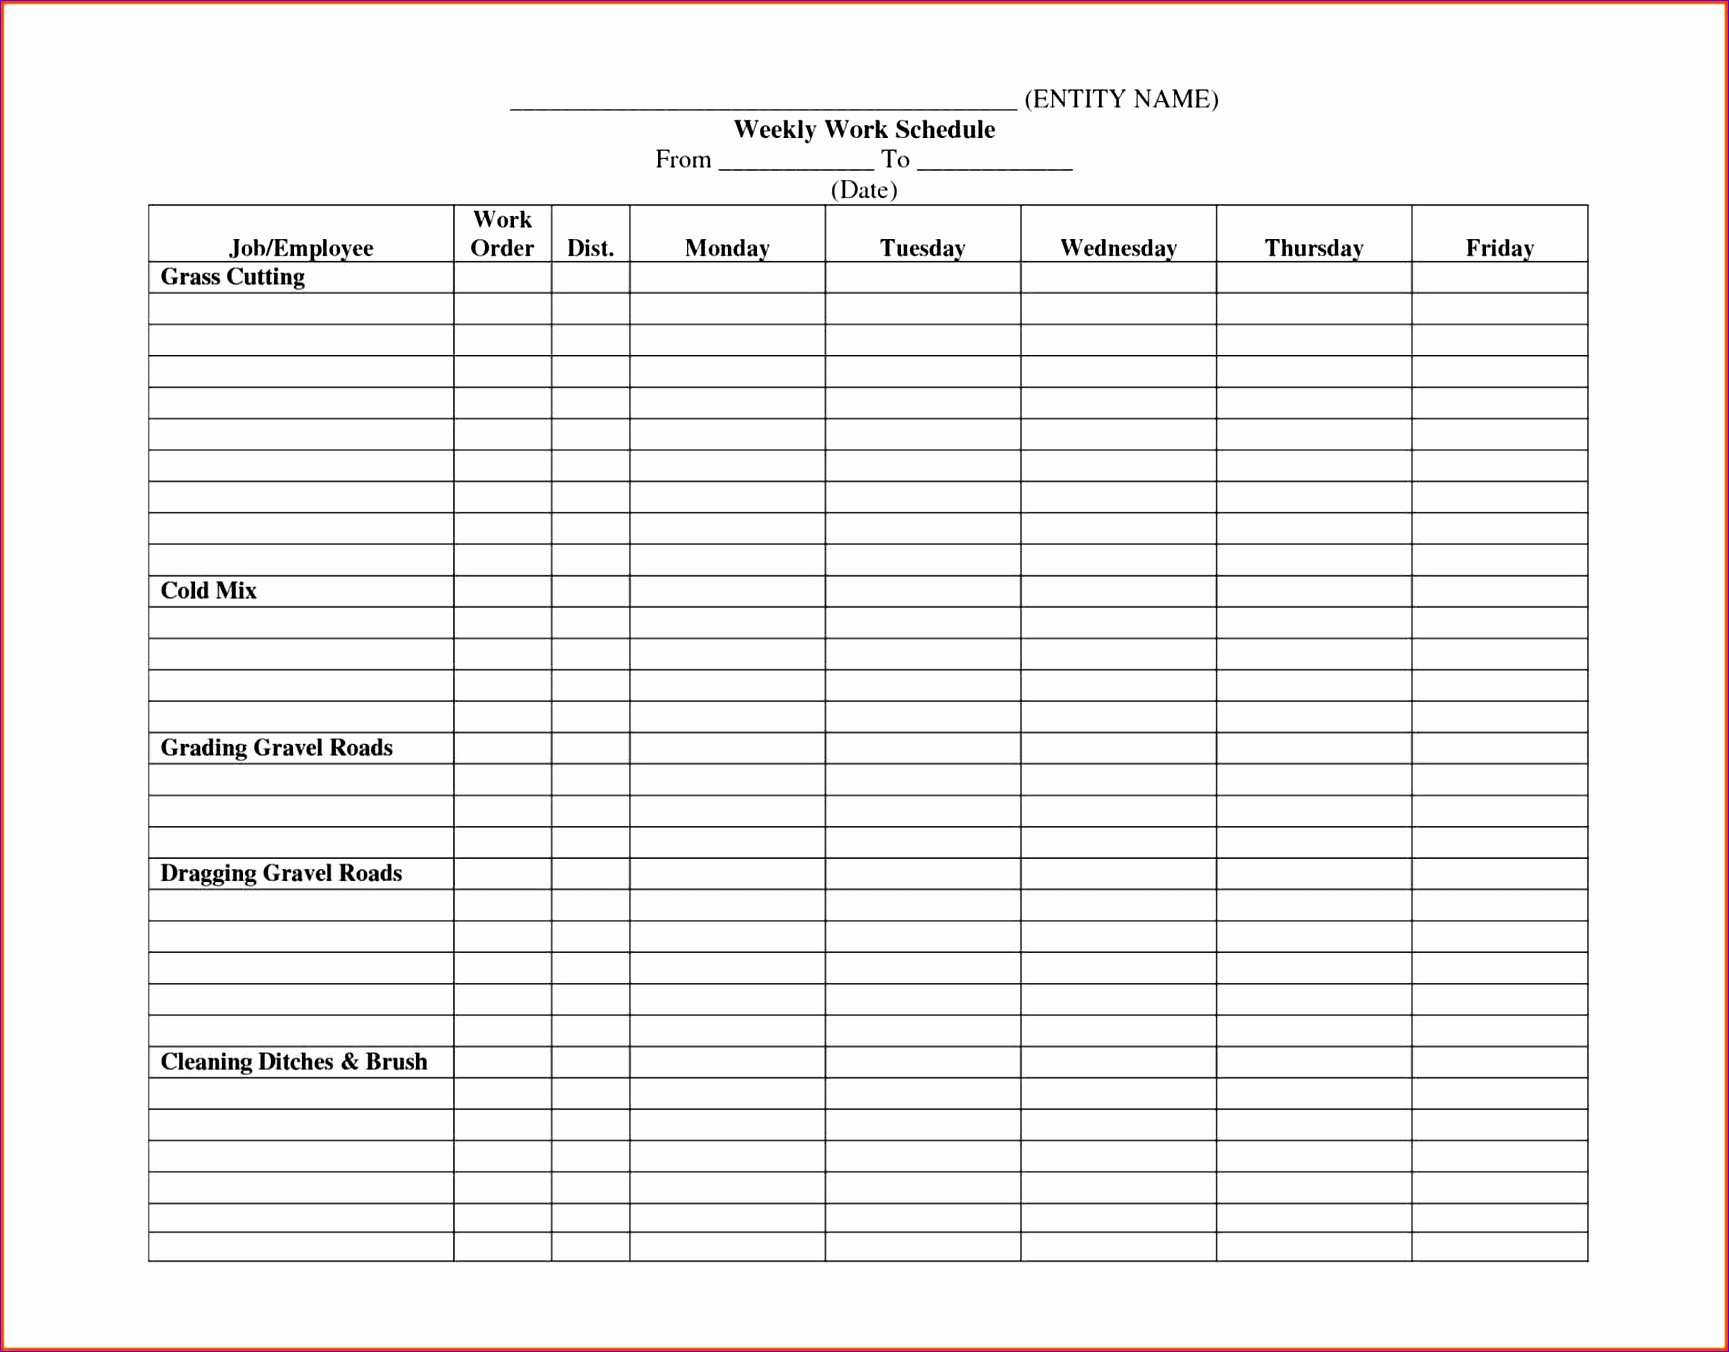 Work Schedule Template work schedule templatebiweekly schedulepng weekly template excel bud letter weekly Bi Weekly Work Schedule Template work schedule template excel